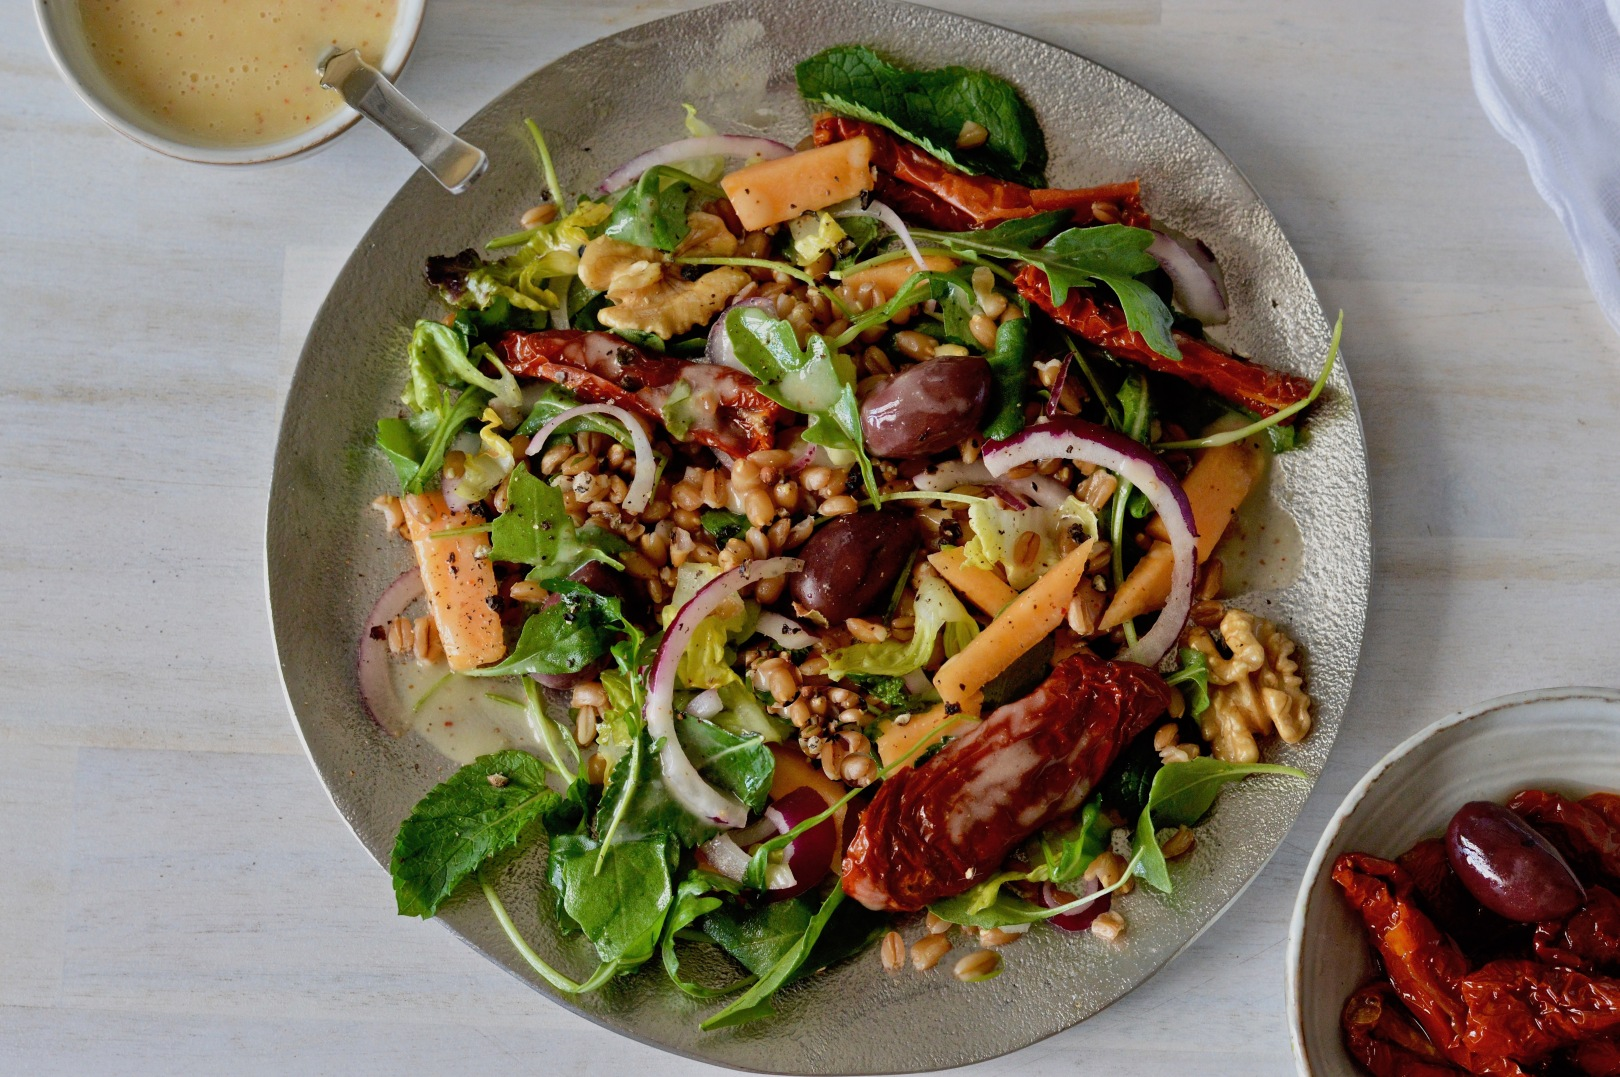 Farro, arugula and cantaloupe salad